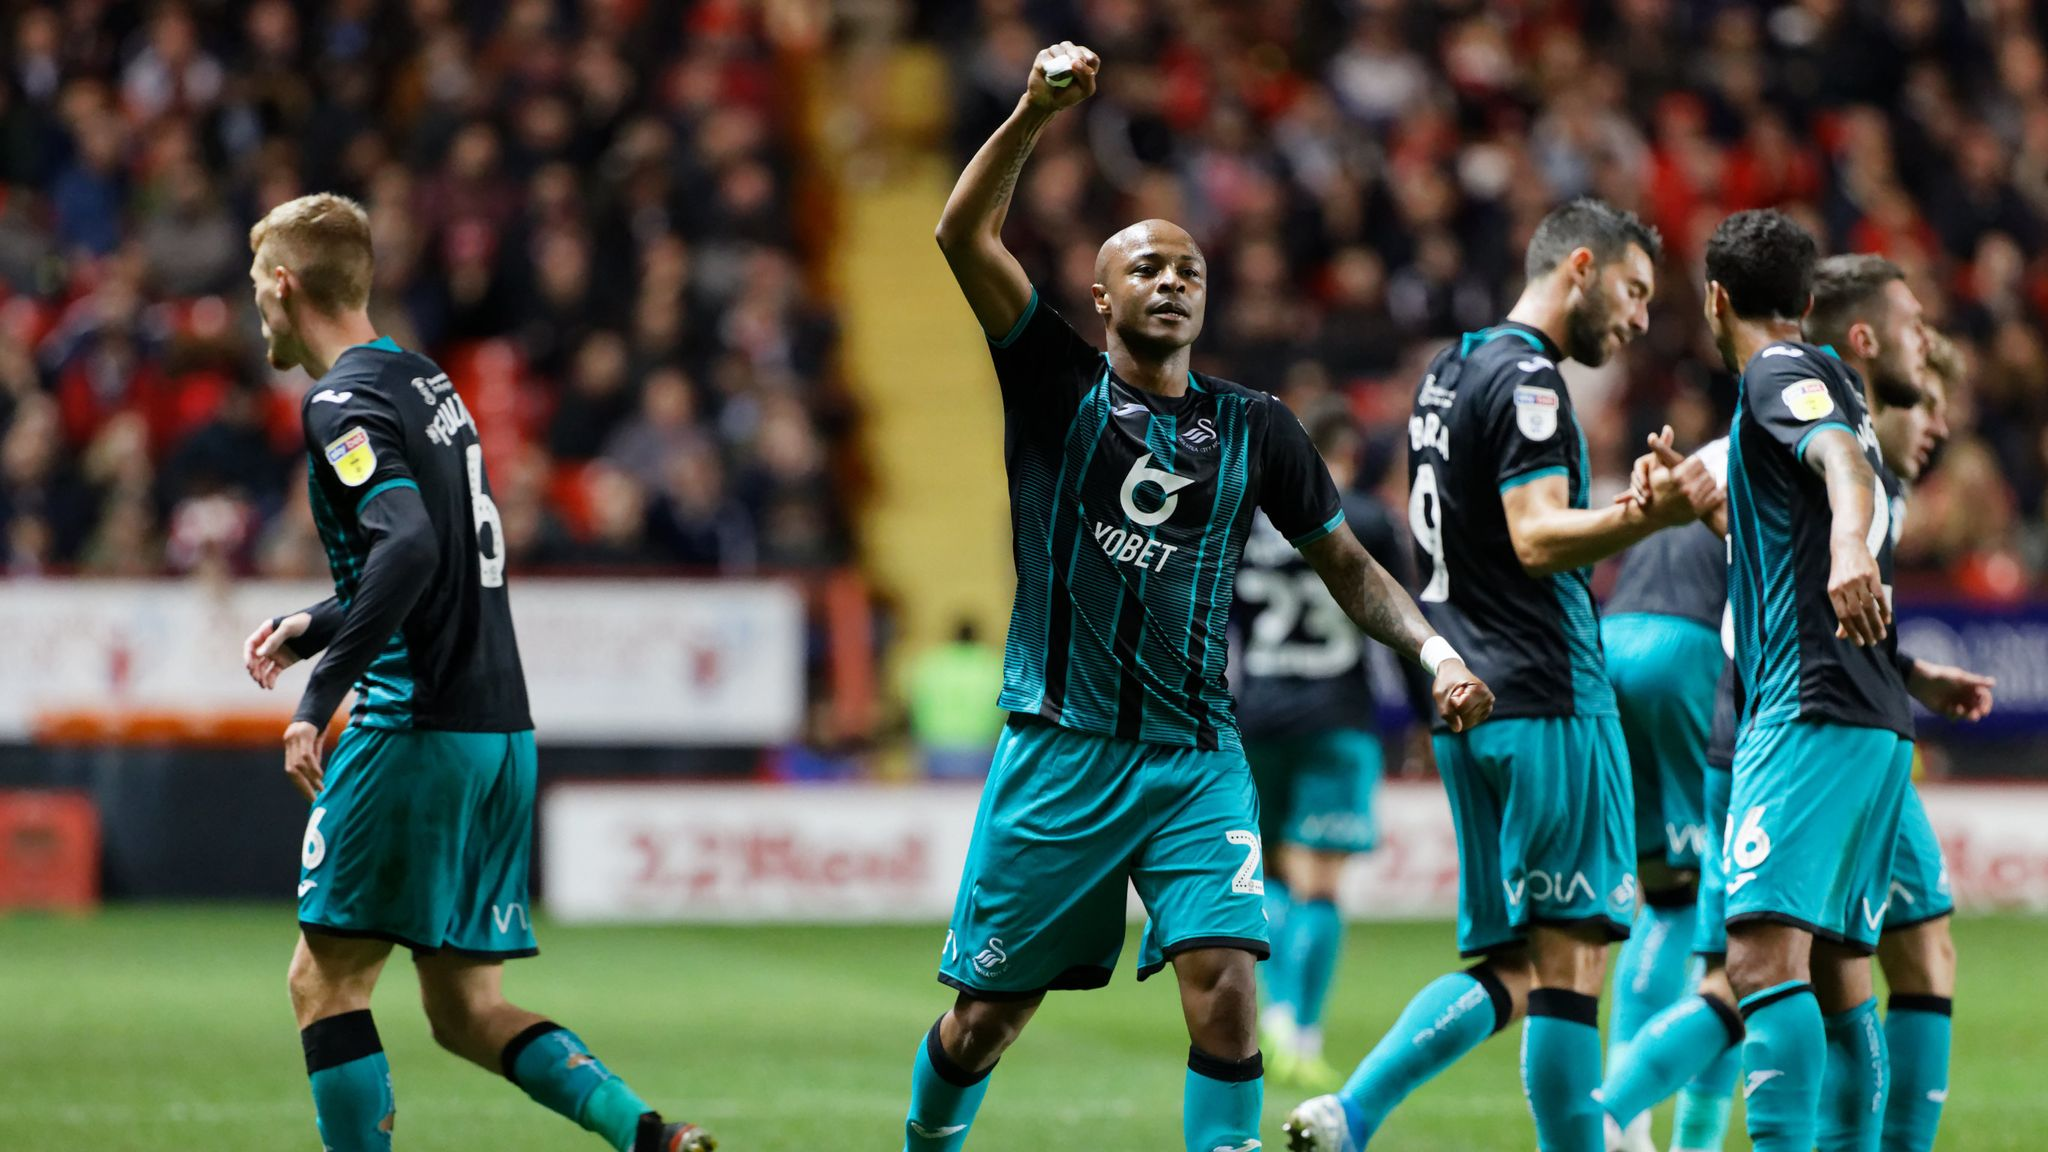 Championship highlights and round-up: Swansea win at Charlton to go top